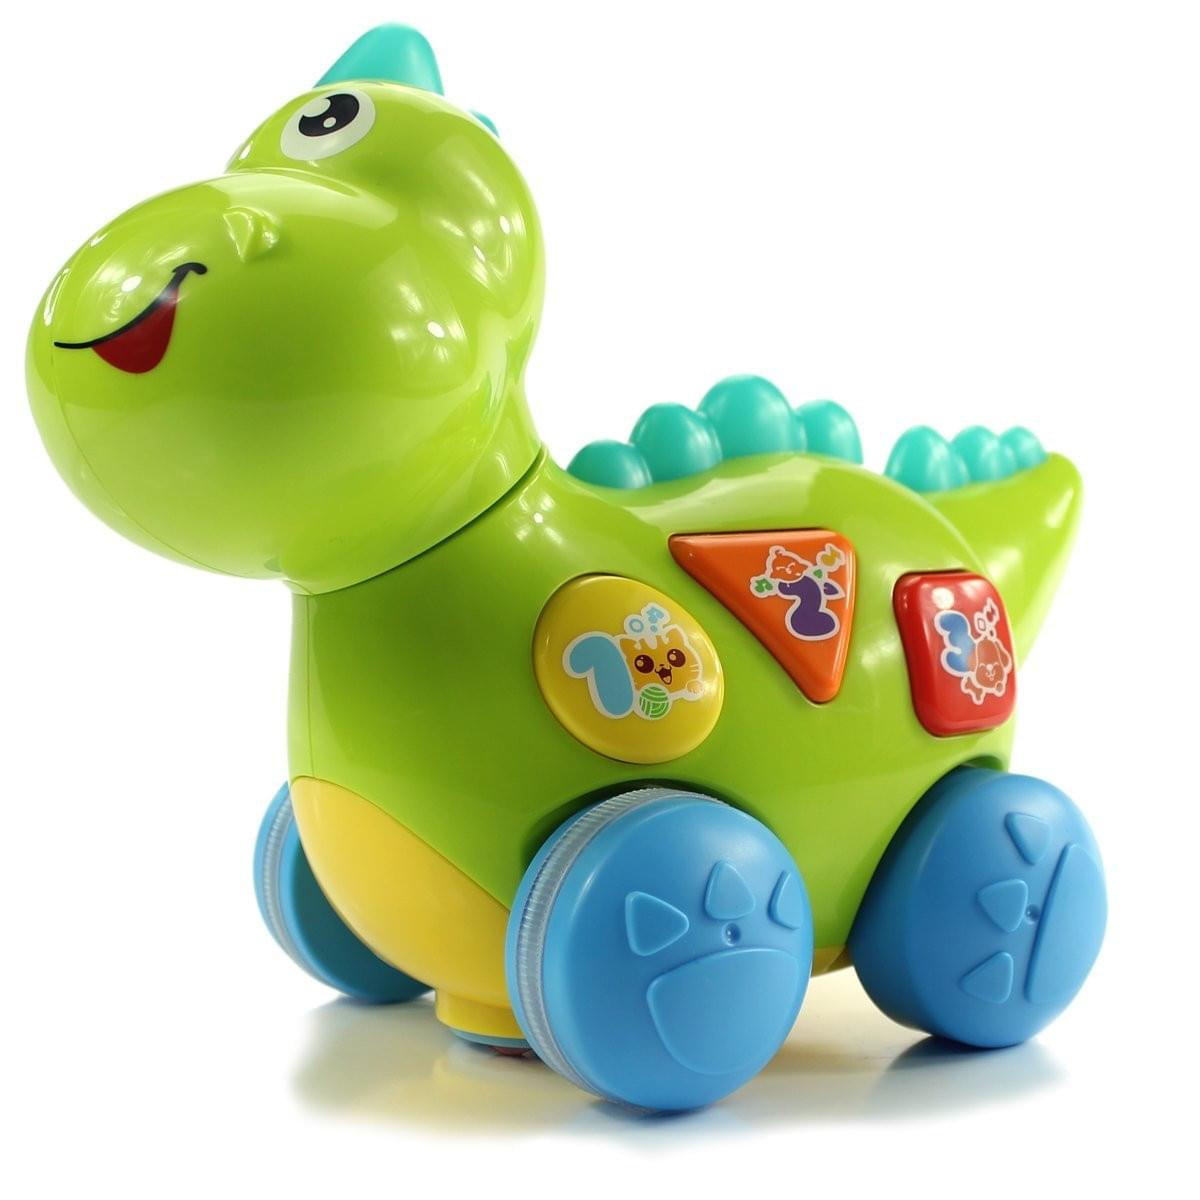 fisca Baby Toys Musical Walking Dinosaur for Babies & Toddlers, Preschool Learning Educational Toys with Lights and Music - wiihuu